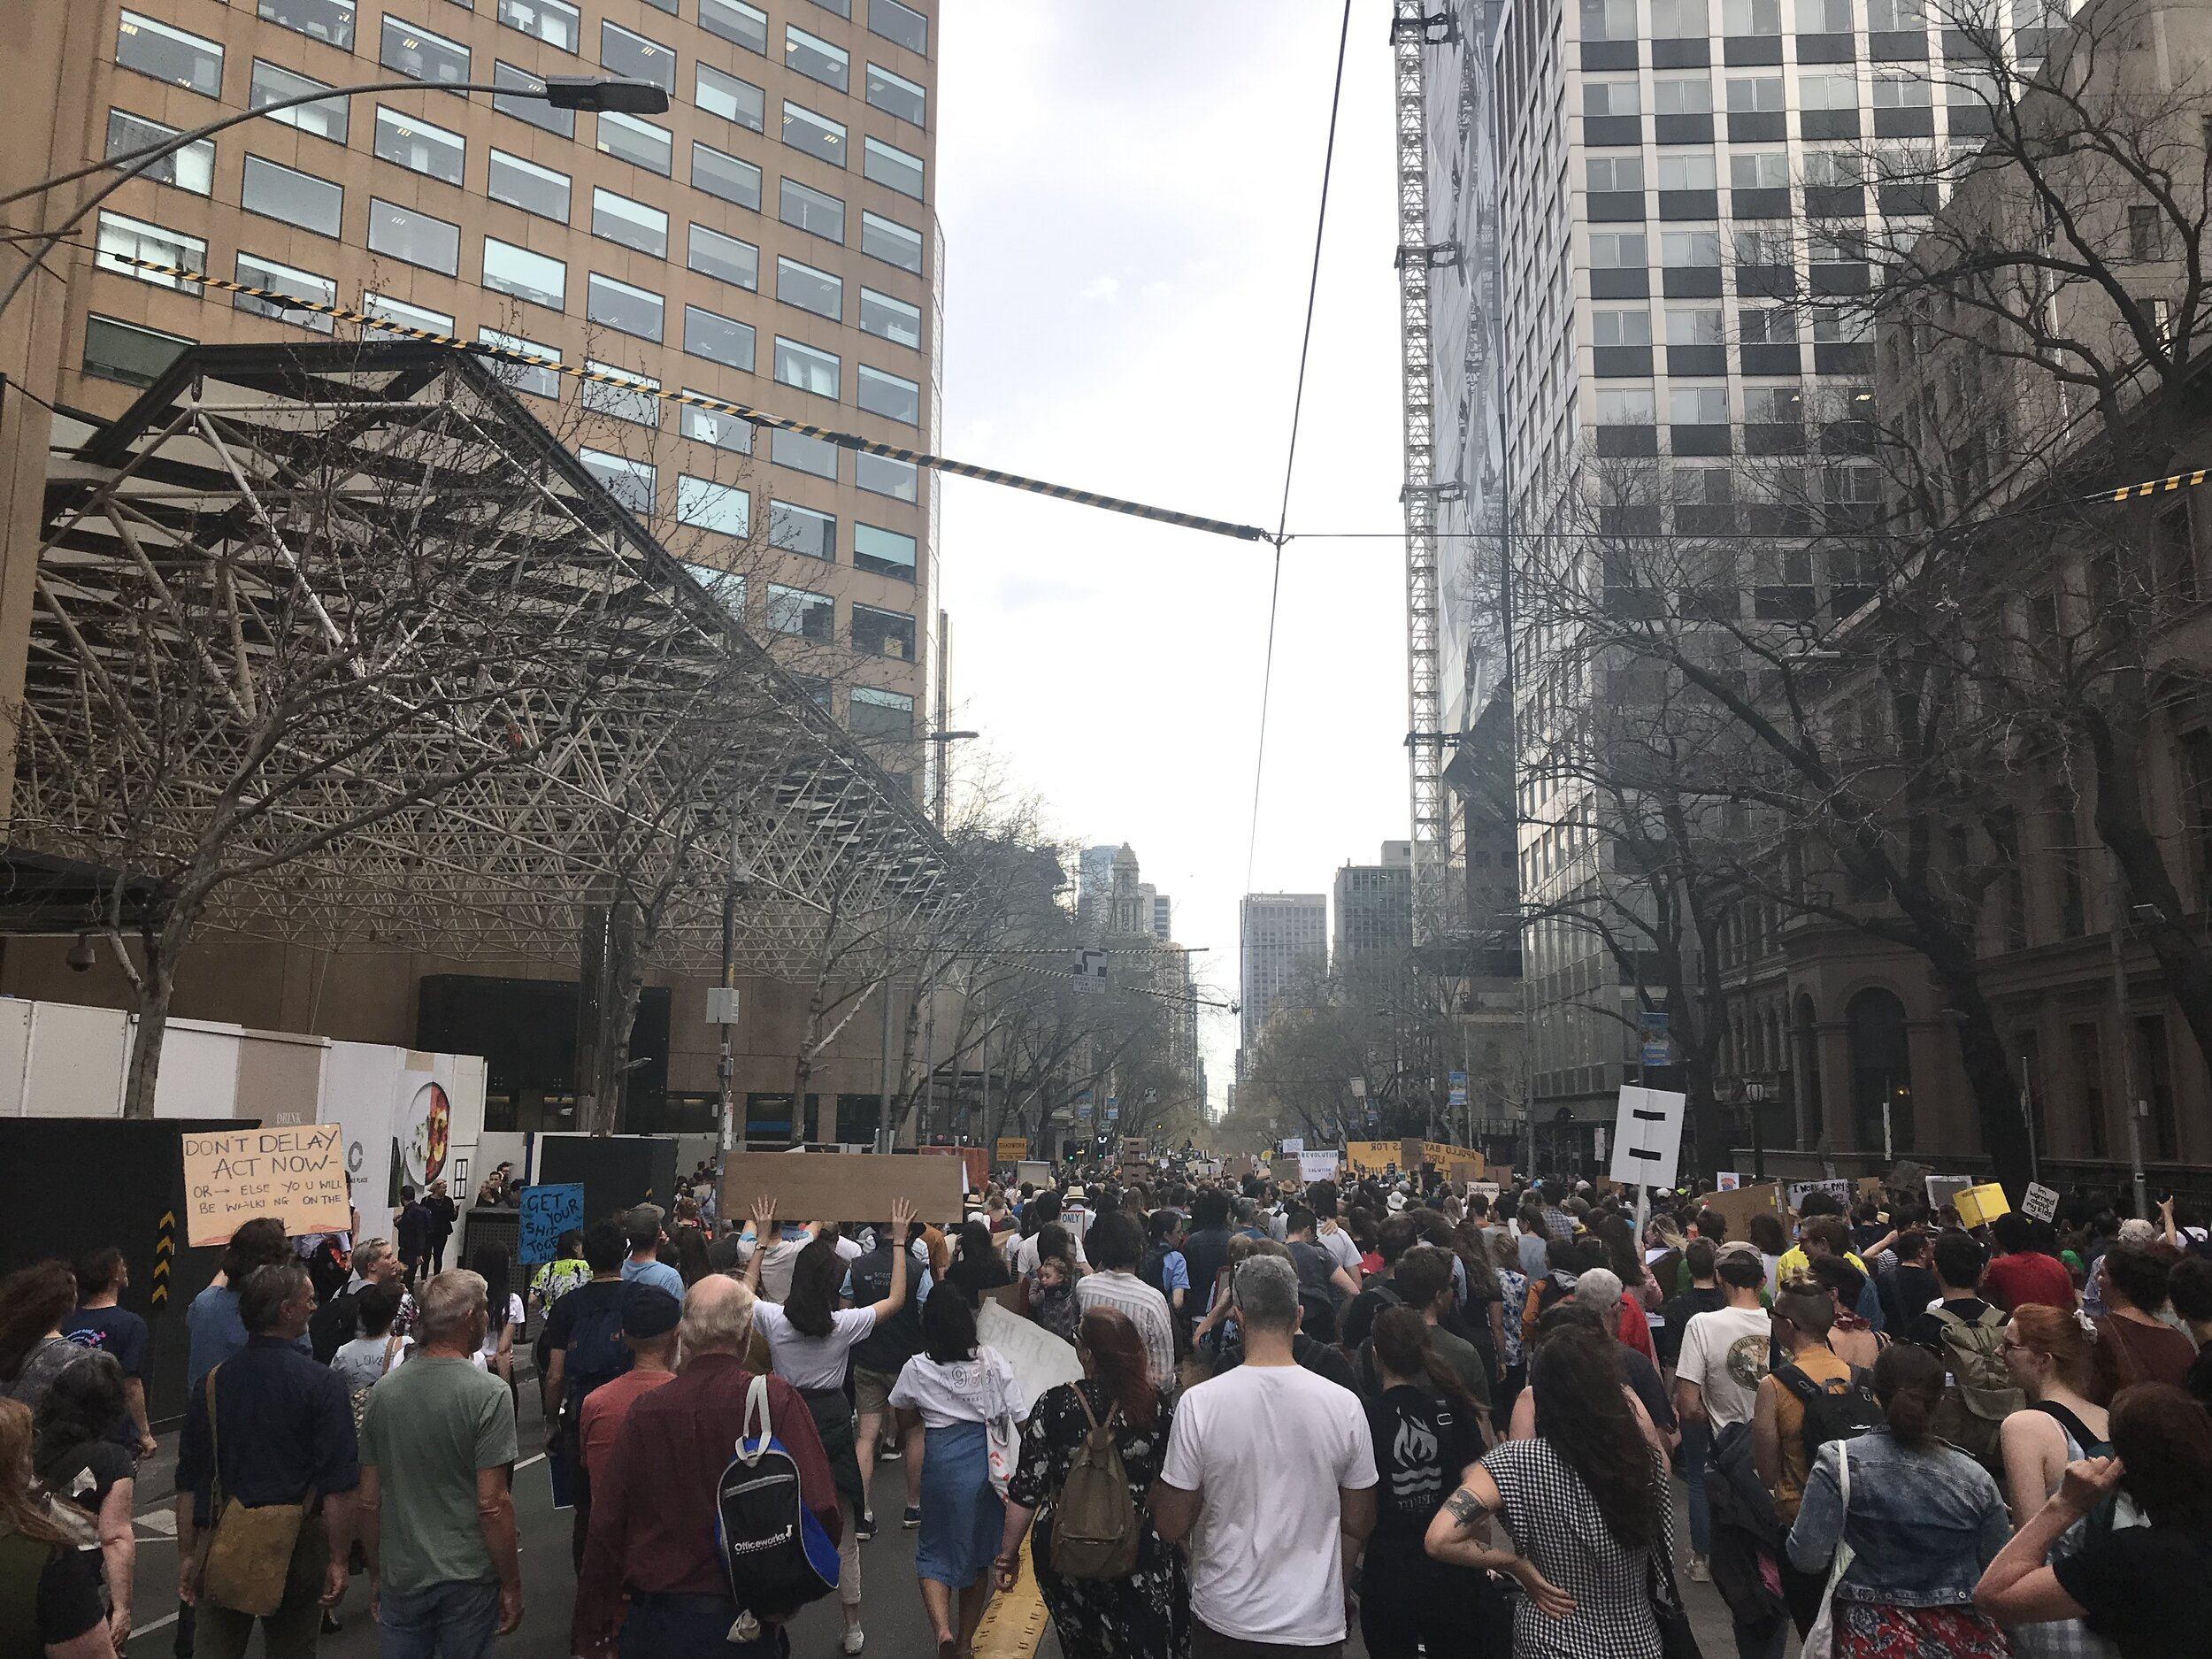 The rally moving into Melbourne CBD. Photograph by Sophie O'Shea